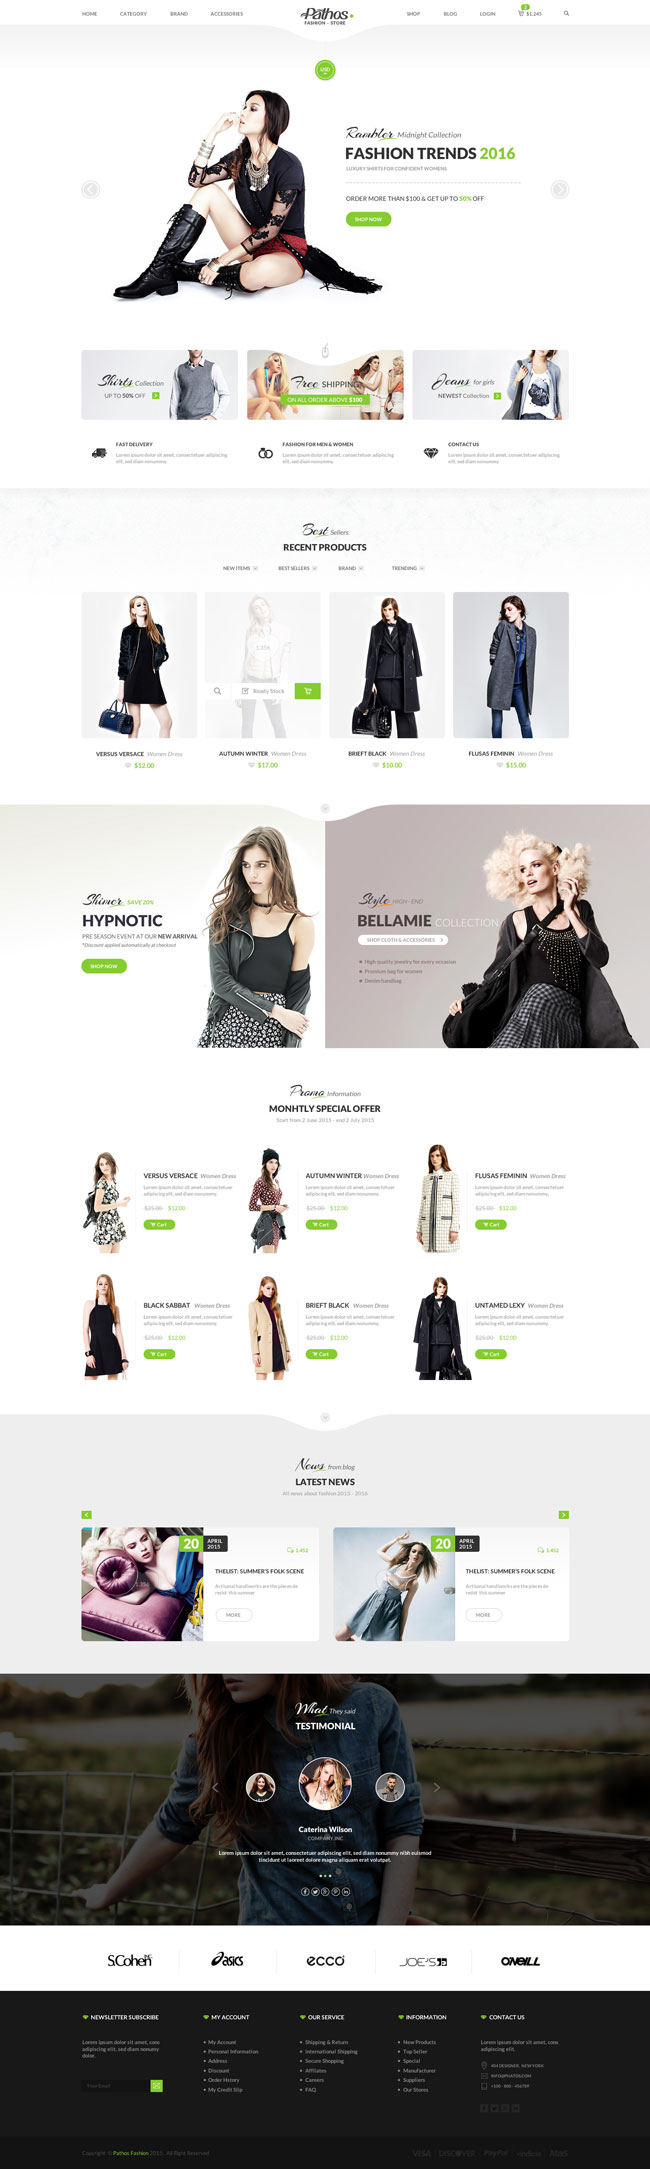 Pathos-ECommerce-PSD-Template